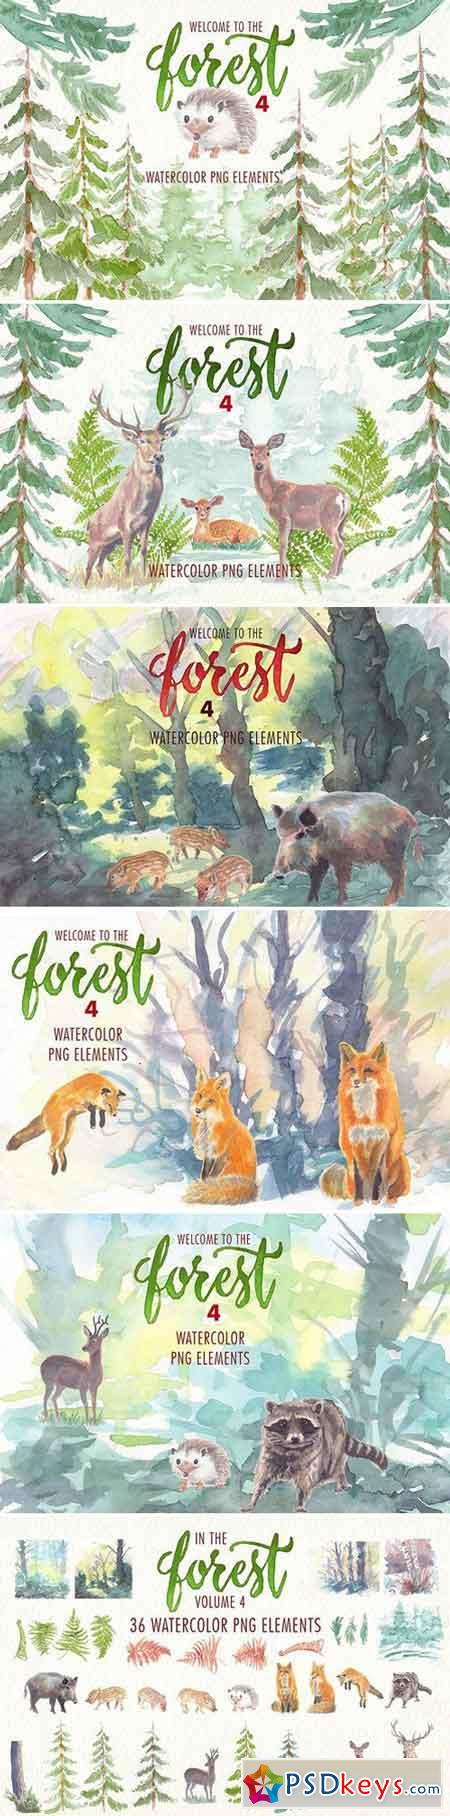 watercolor in the forest clipart 1926459